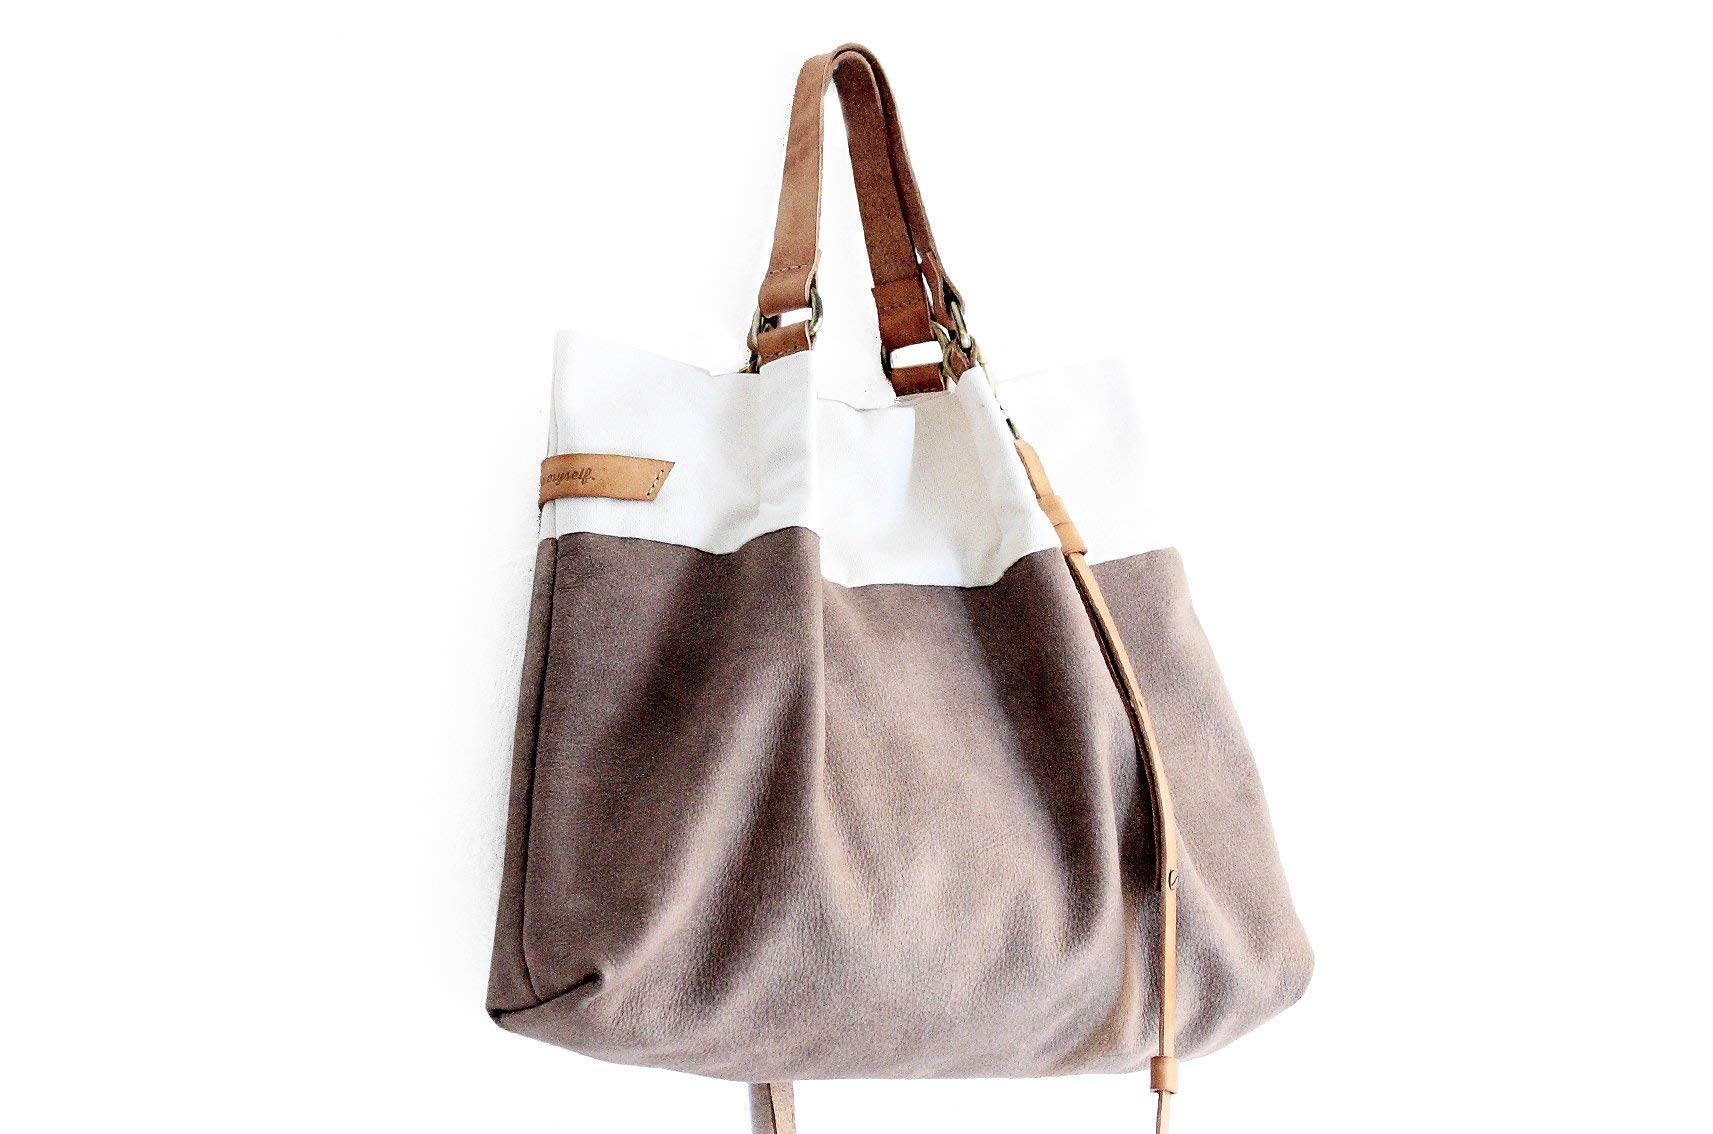 TOTE bag and HAND bag made of soft nubuk leather, canvas and italian leather. Emma bag - handmade-bags